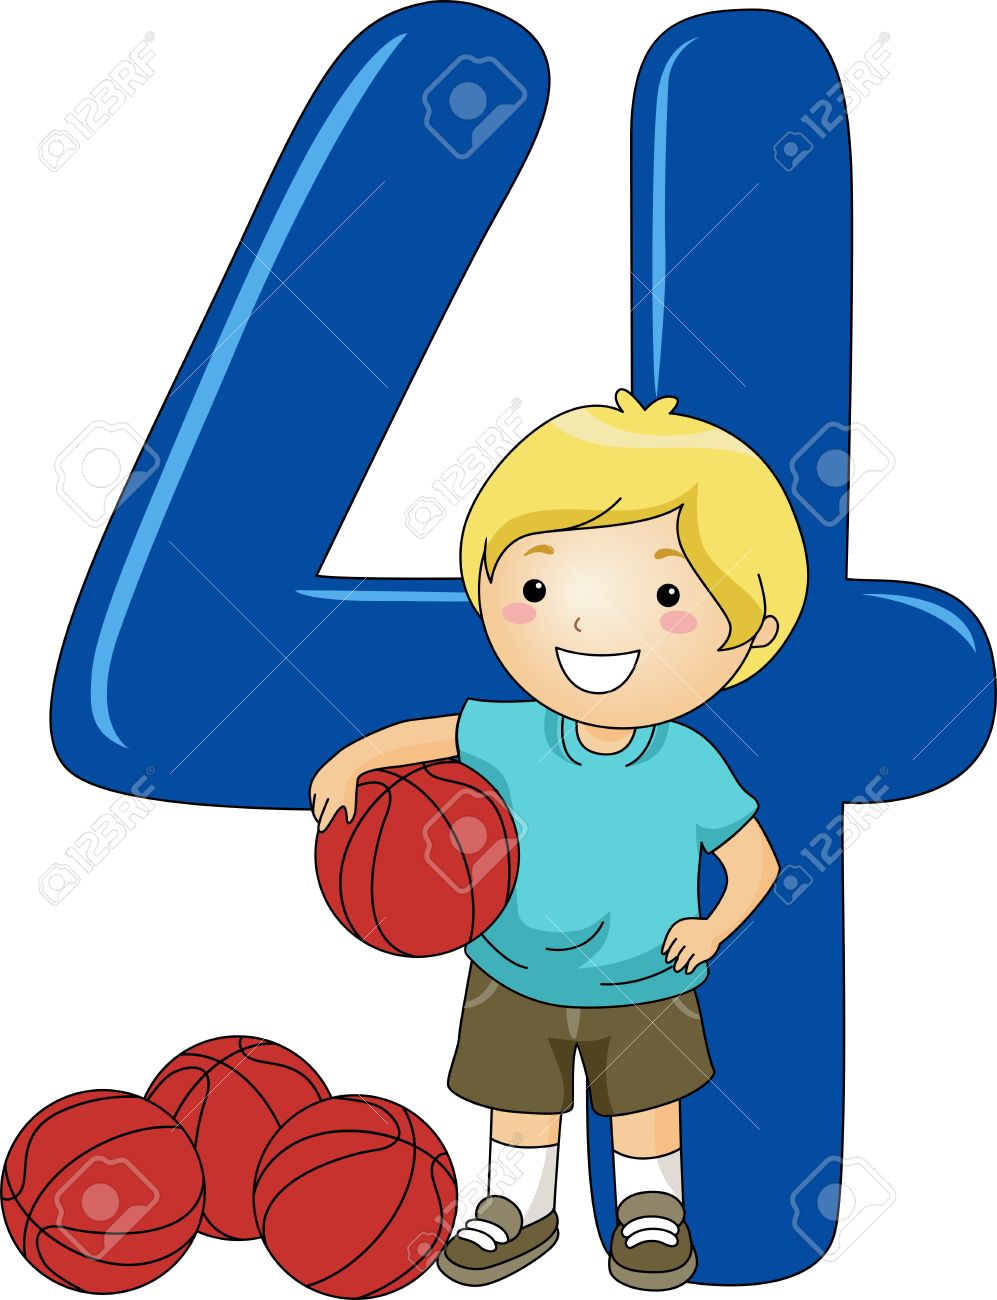 997x1300 Numbers Clipart Kids Number Clipart Kid Number 11